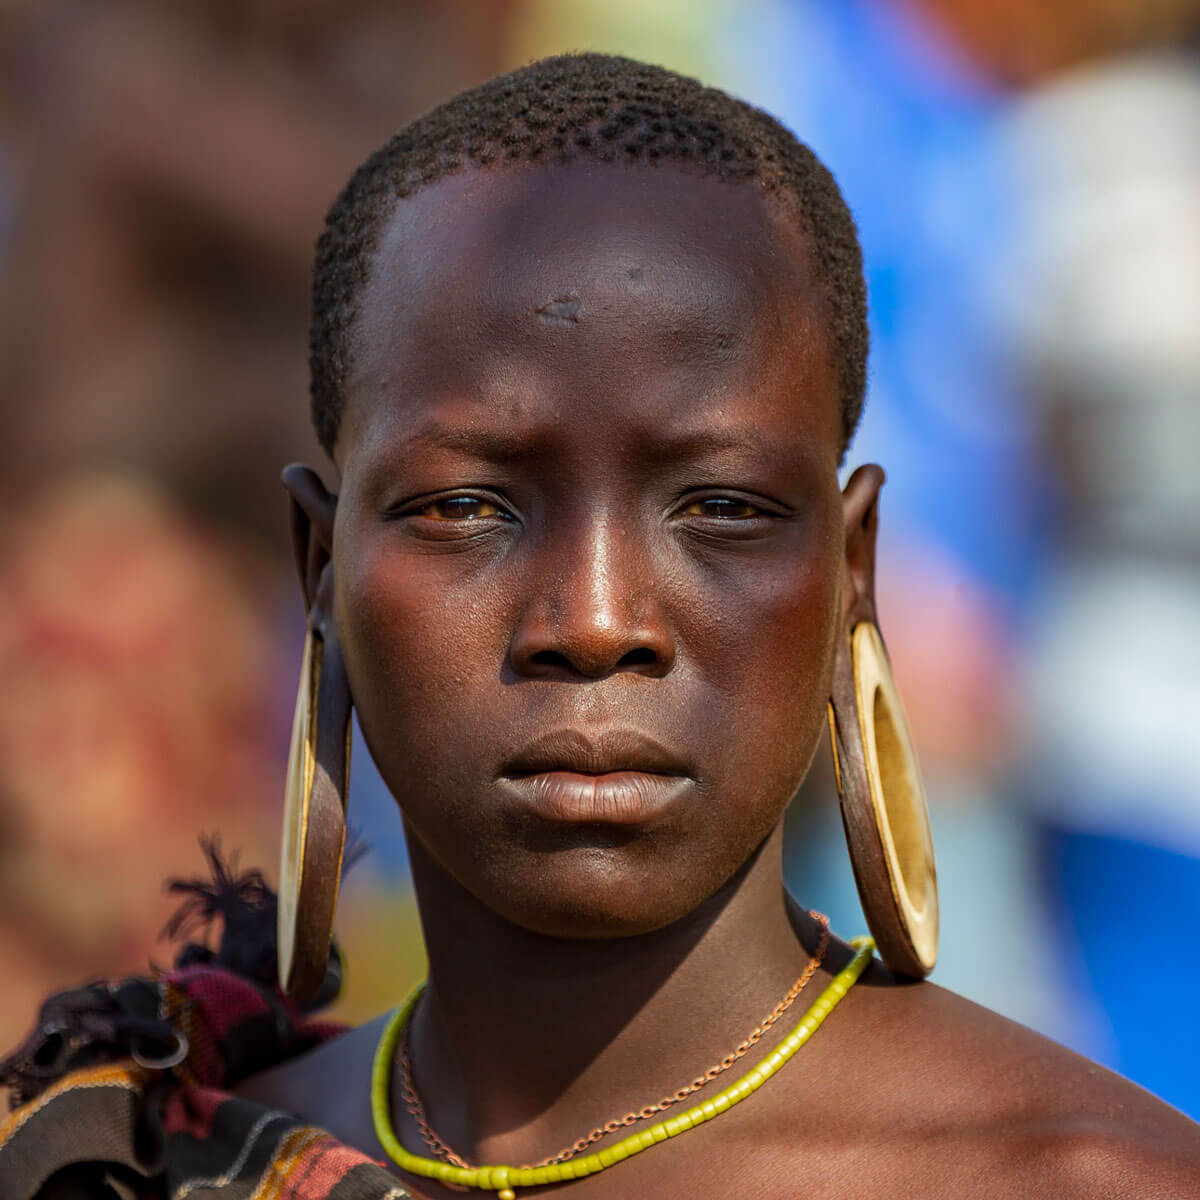 Ethiopia_mursi_tribe_surma_girl_omo_valley_Africa_country_village_traveling_tour_adventuresinethiopia